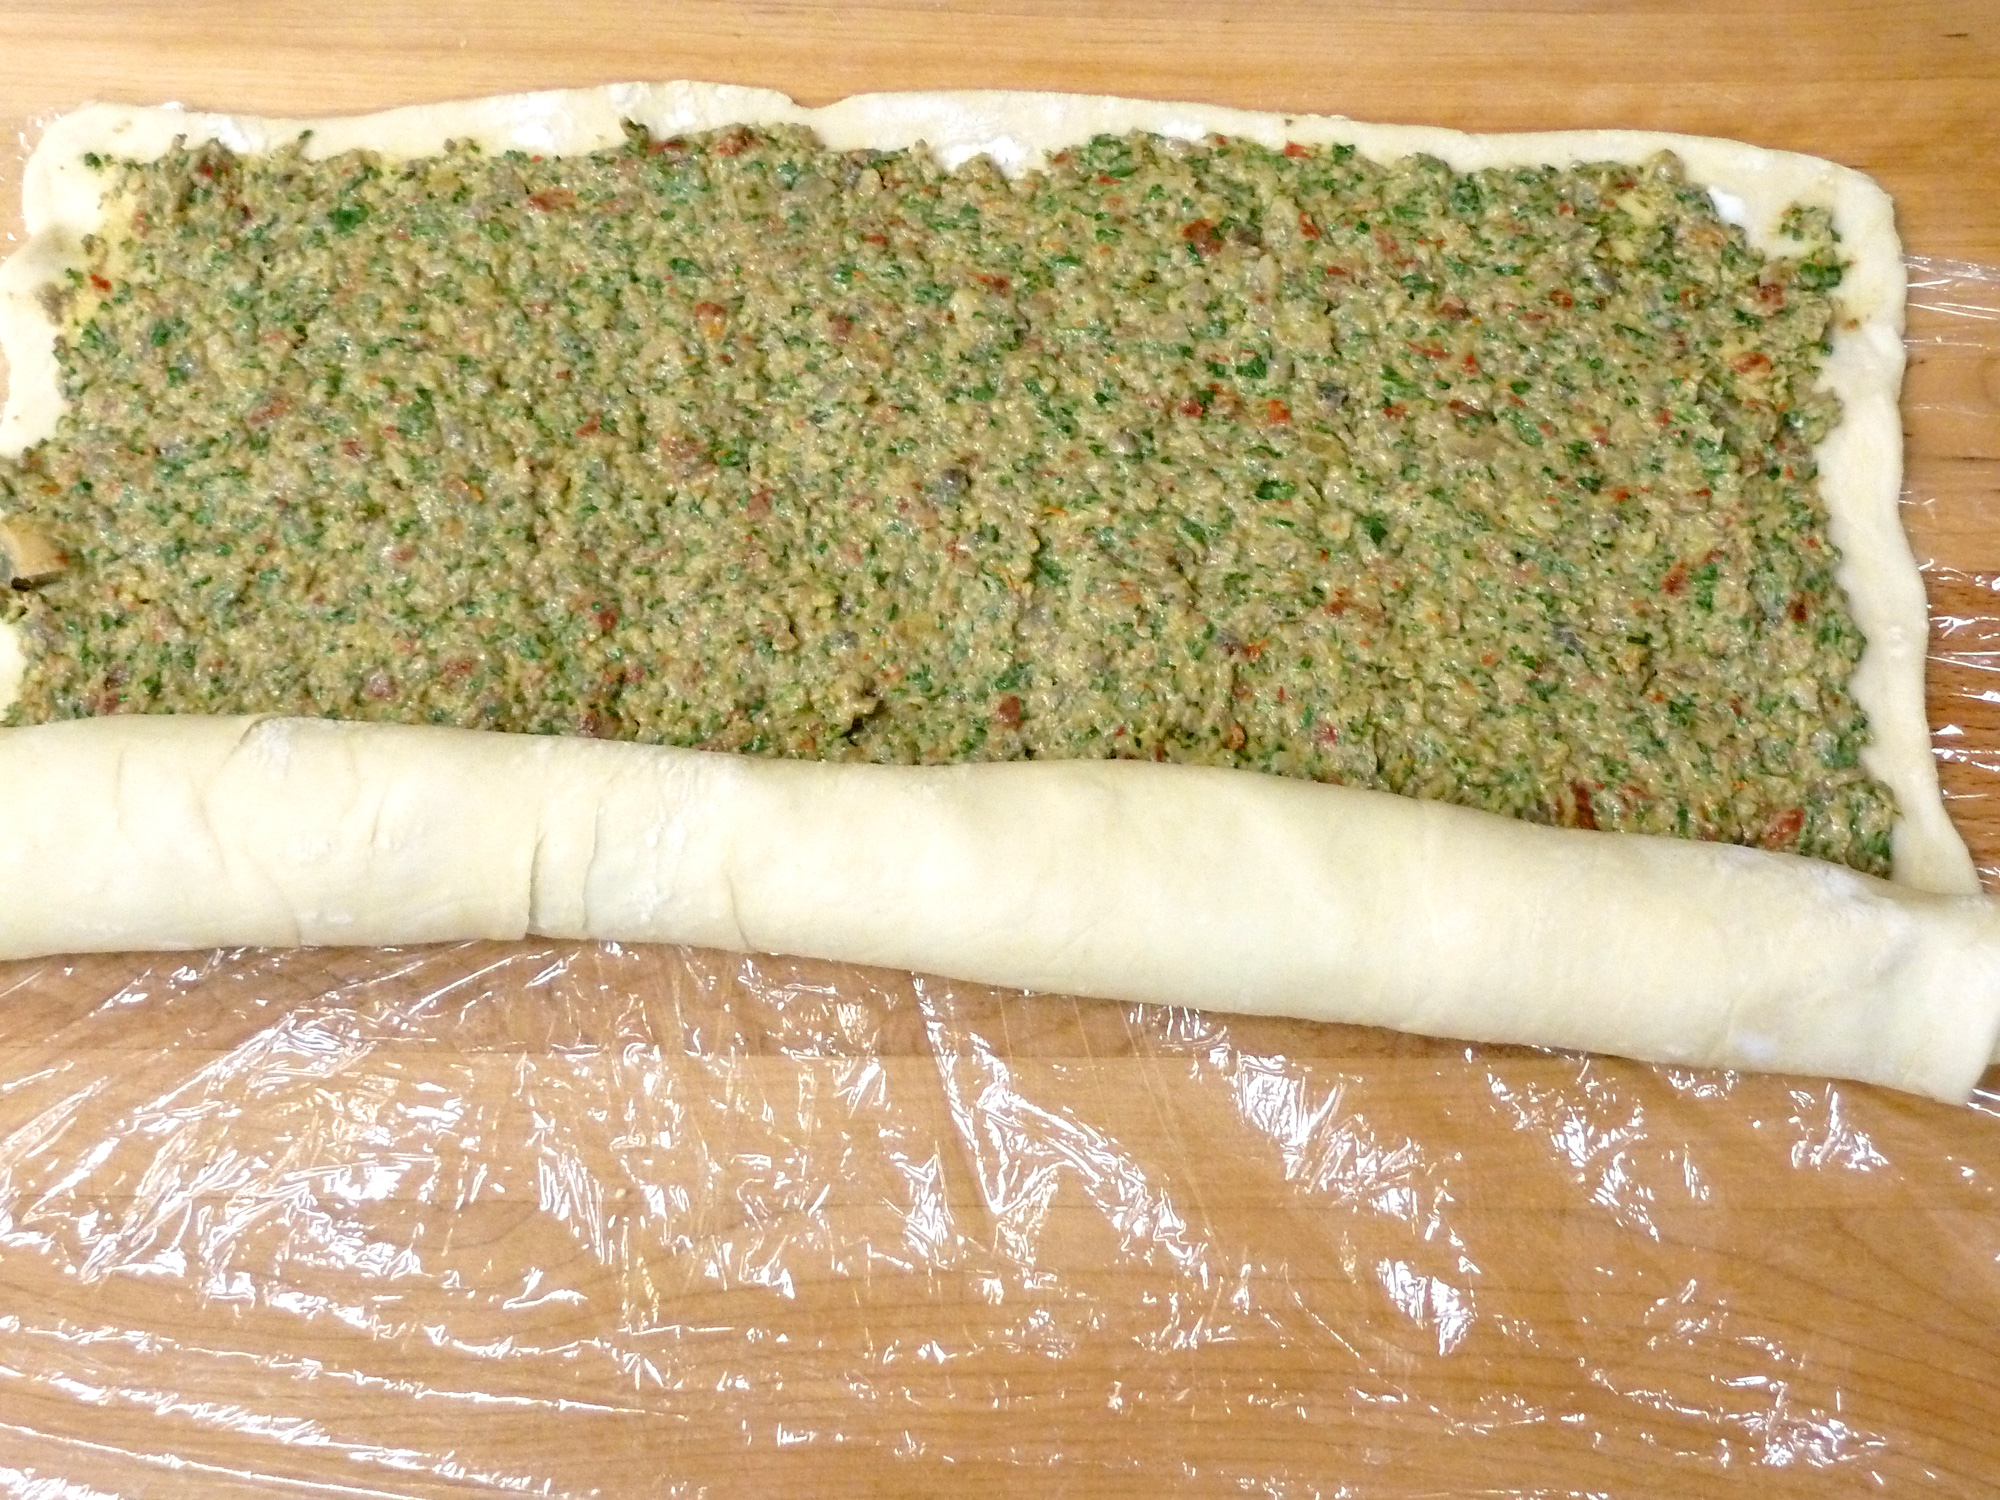 Roll the pastry into a cylinder like a jelly-roll.